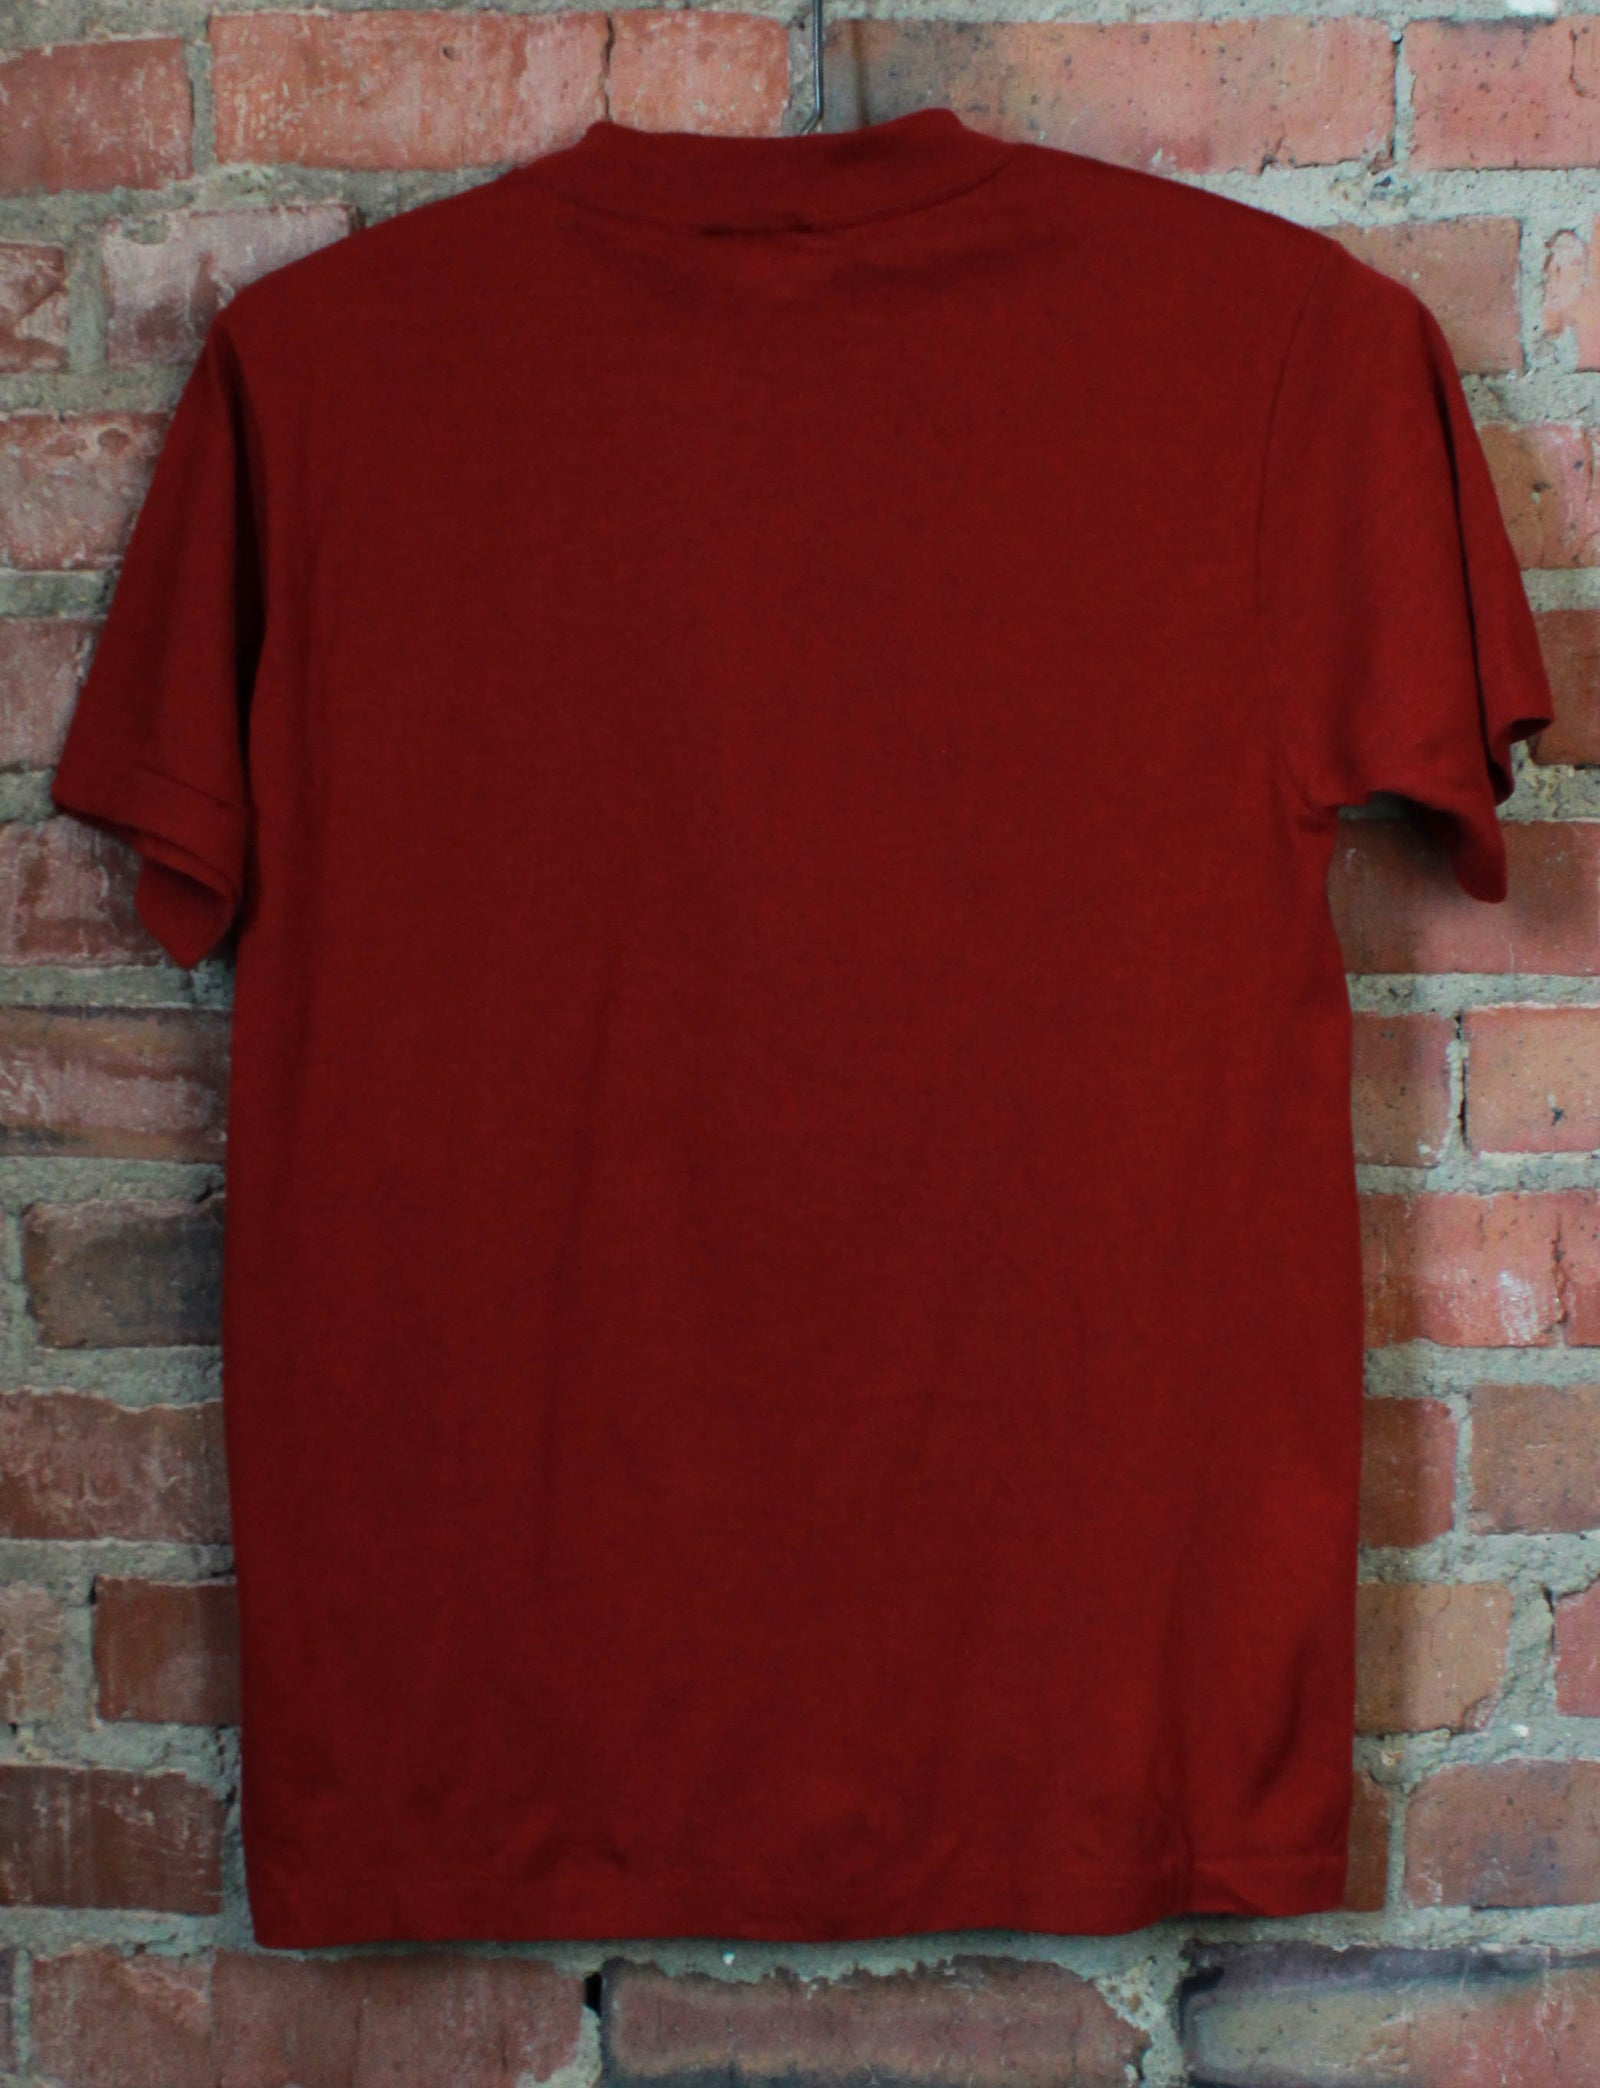 Vintage 80's London Paris Rome Ft. Worth Graphic T Shirt Maroon Unisex Small/Medium